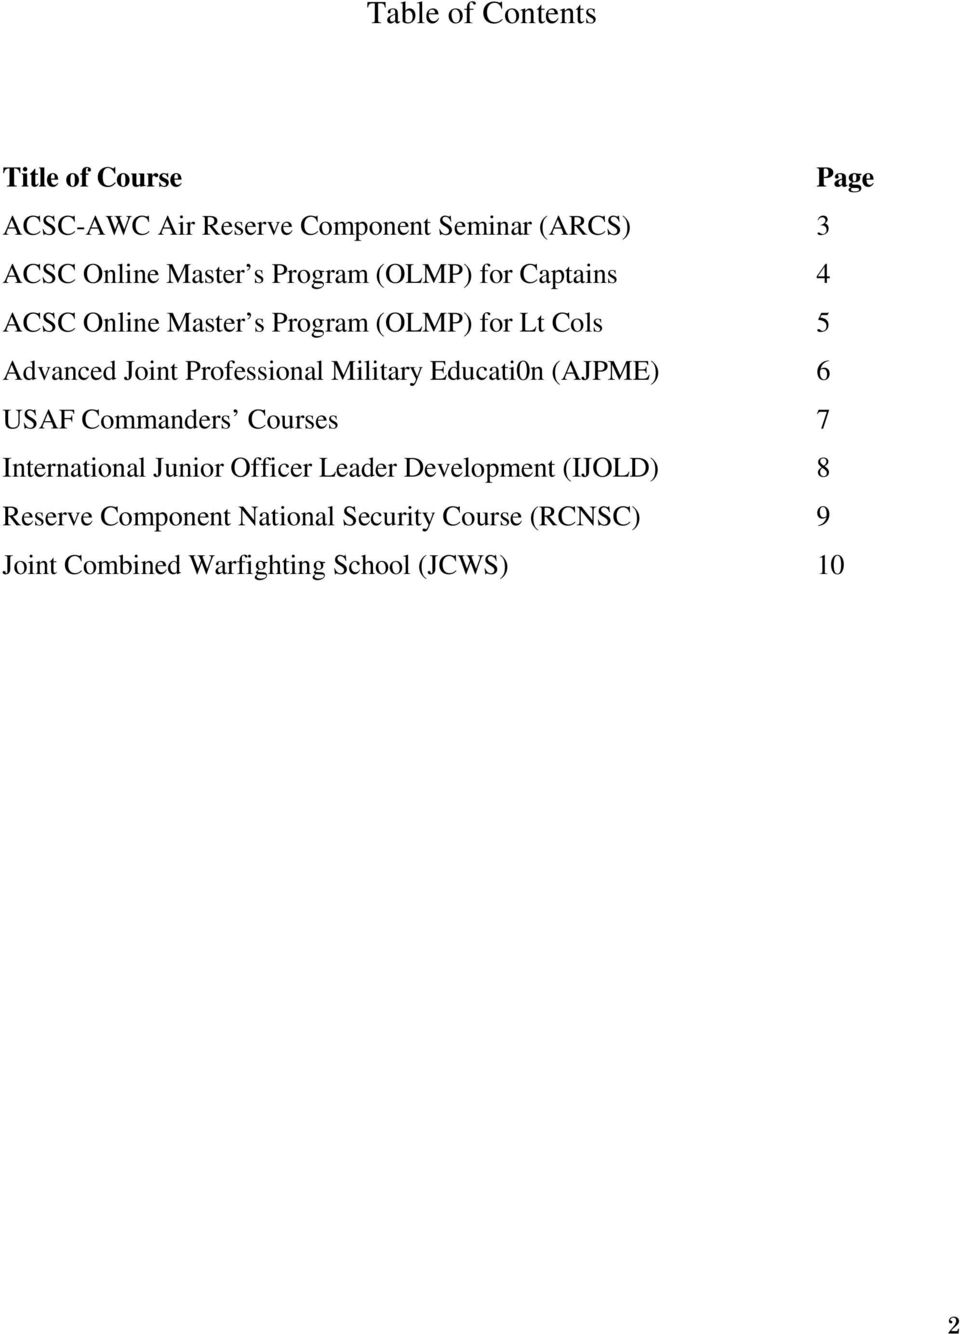 Professional Military Educati0n (AJPME) 6 USAF Commanders Courses 7 International Junior Officer Leader